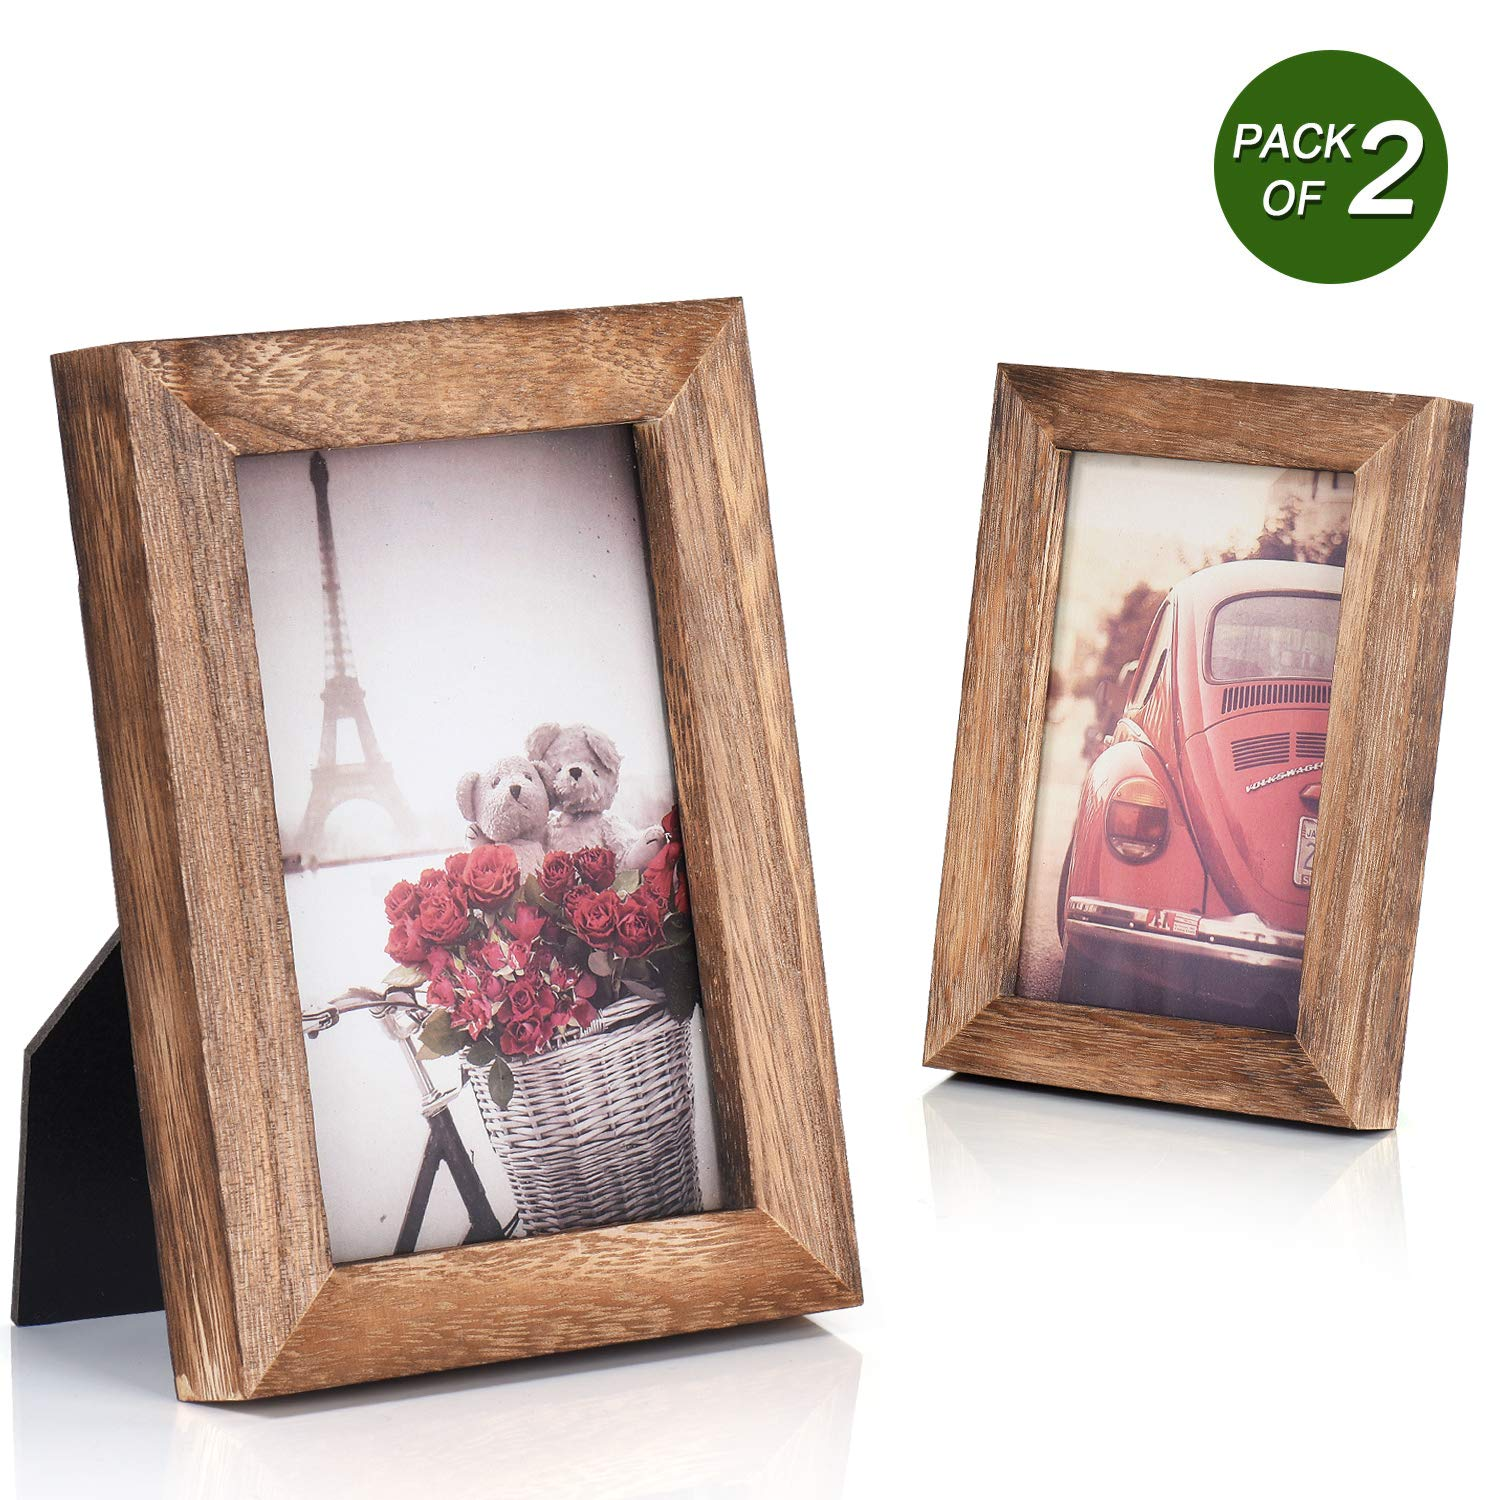 Emfogo 4x6 Picture Frame Photo Display for Tabletop Display Wall Mount Solid Wood High Definition Glass Photo Frame Pack of 2 by Emfogo